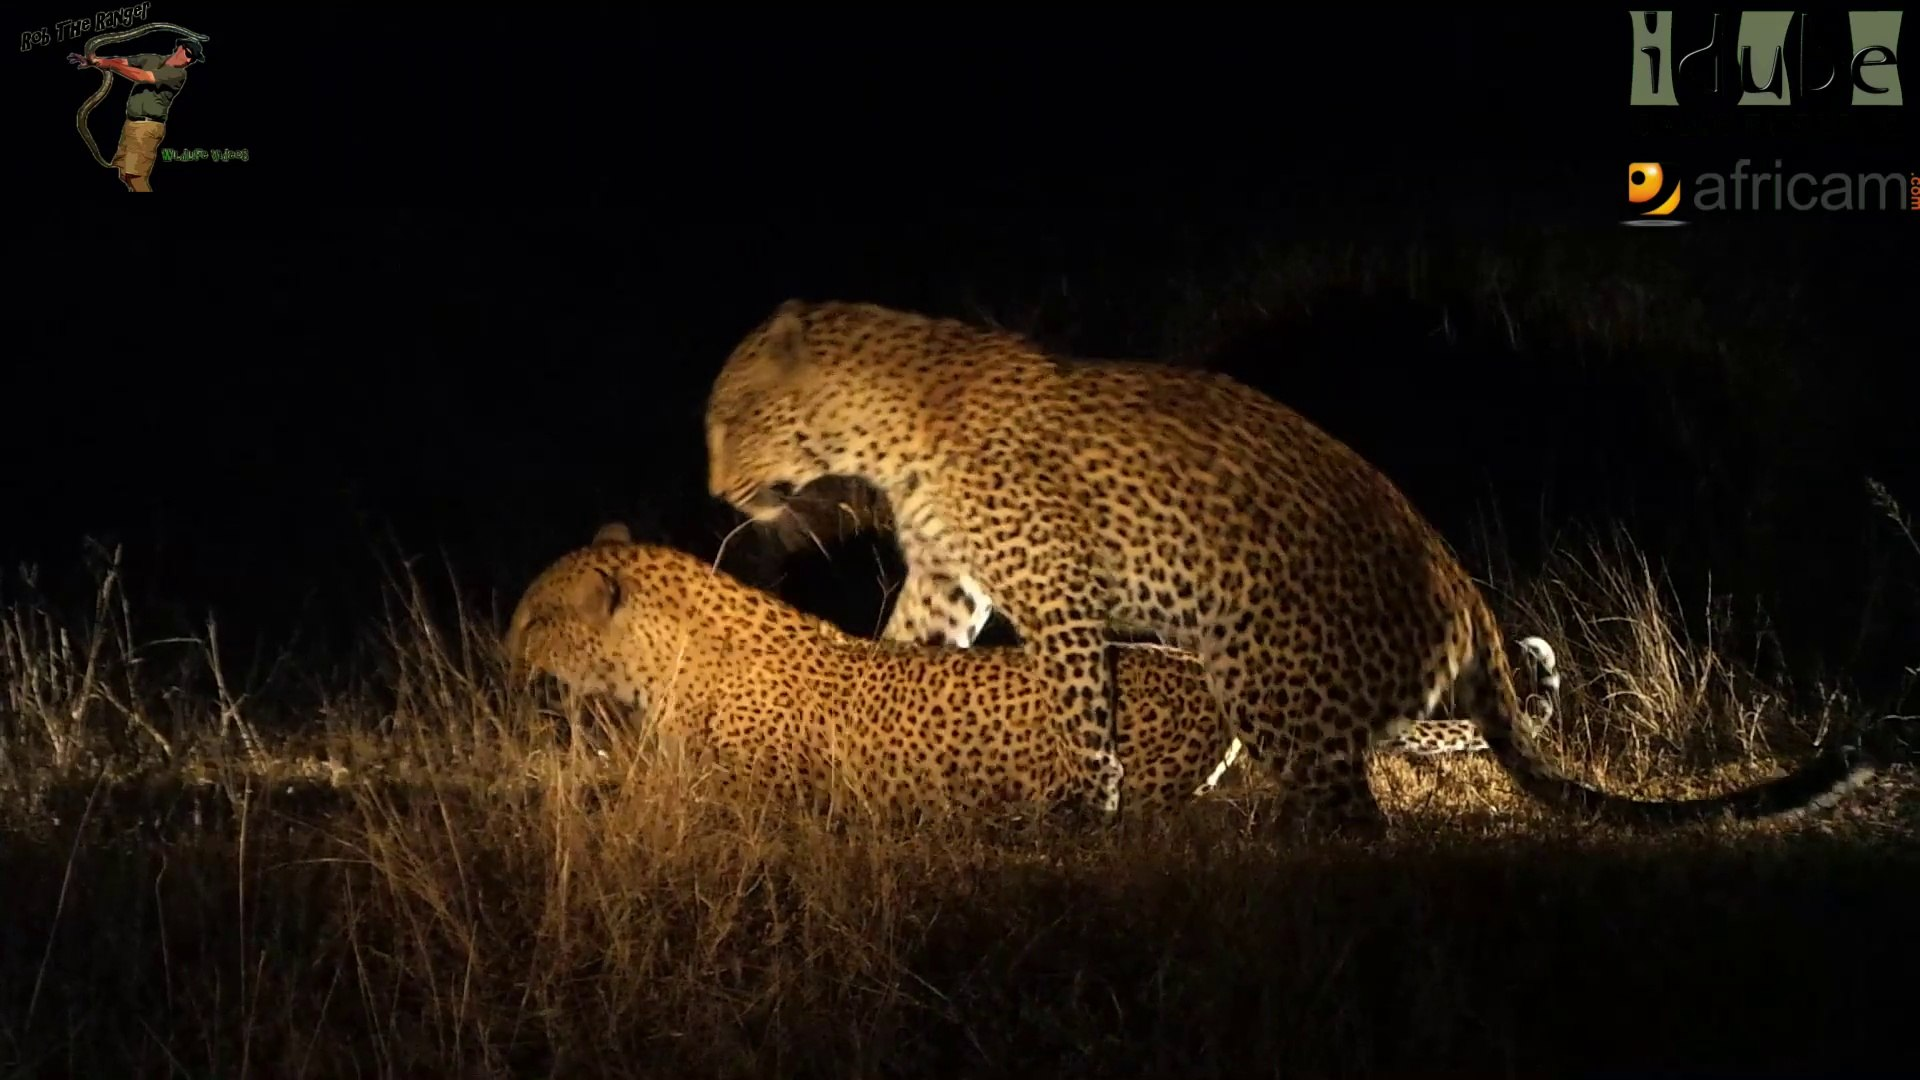 Animal Jaguar Sex Porn sex in the wild: leopards getting frisky at night - video